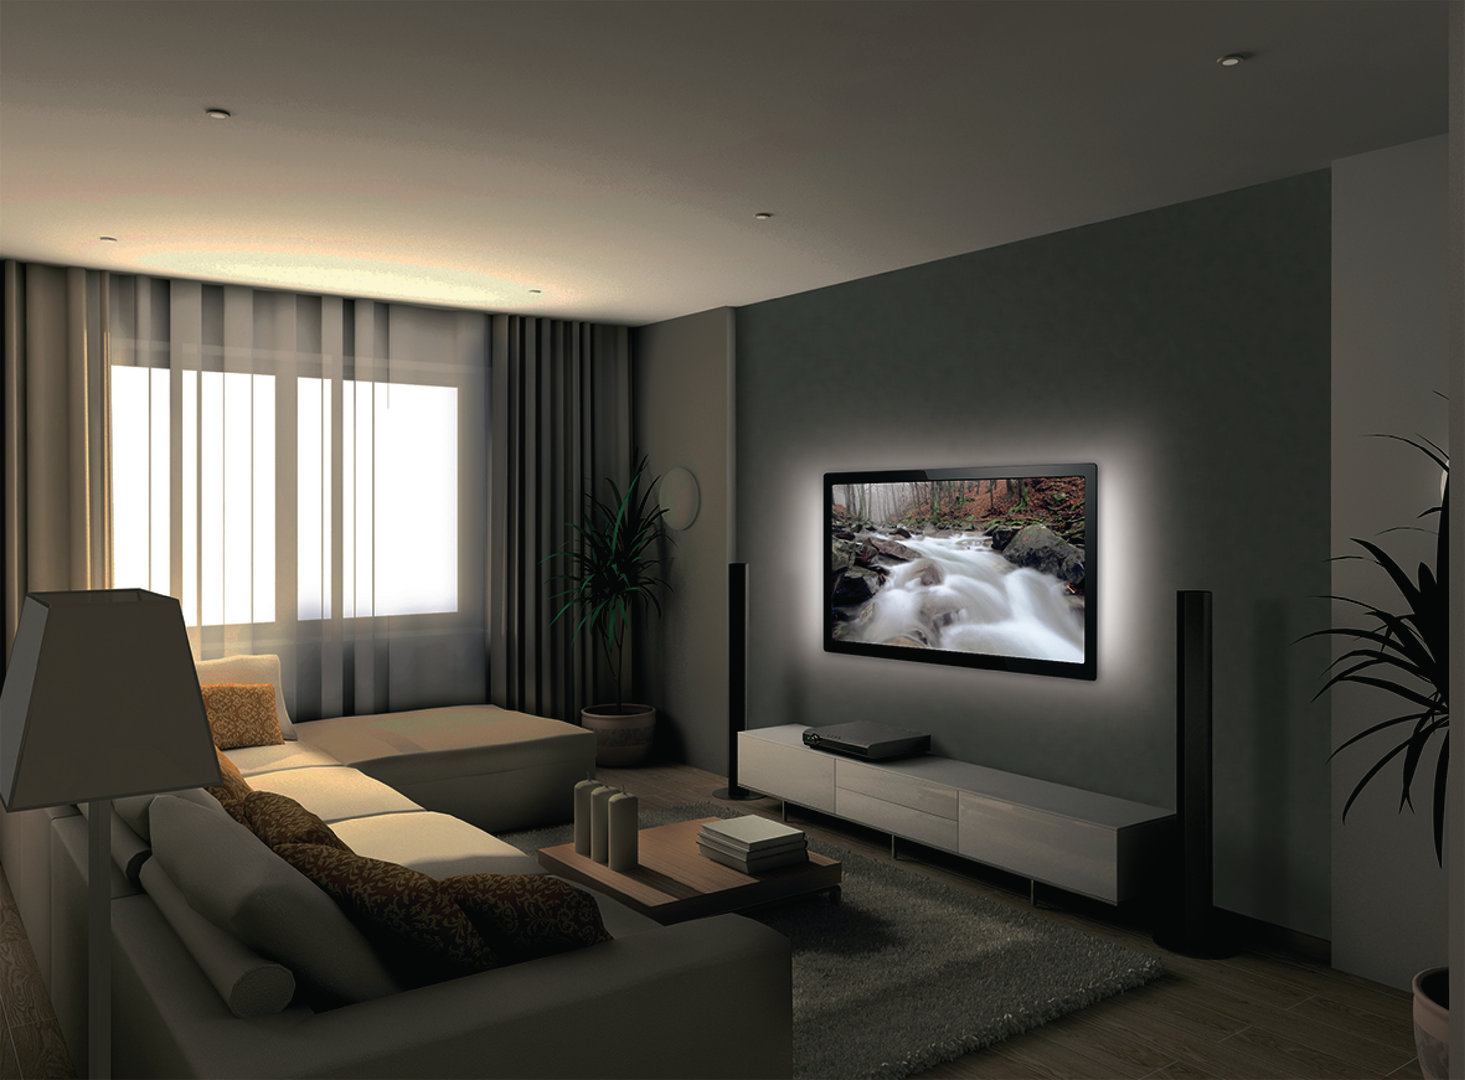 bande led lumineuse pour tv led 192 lm 1800 mm blanc froid aervi. Black Bedroom Furniture Sets. Home Design Ideas